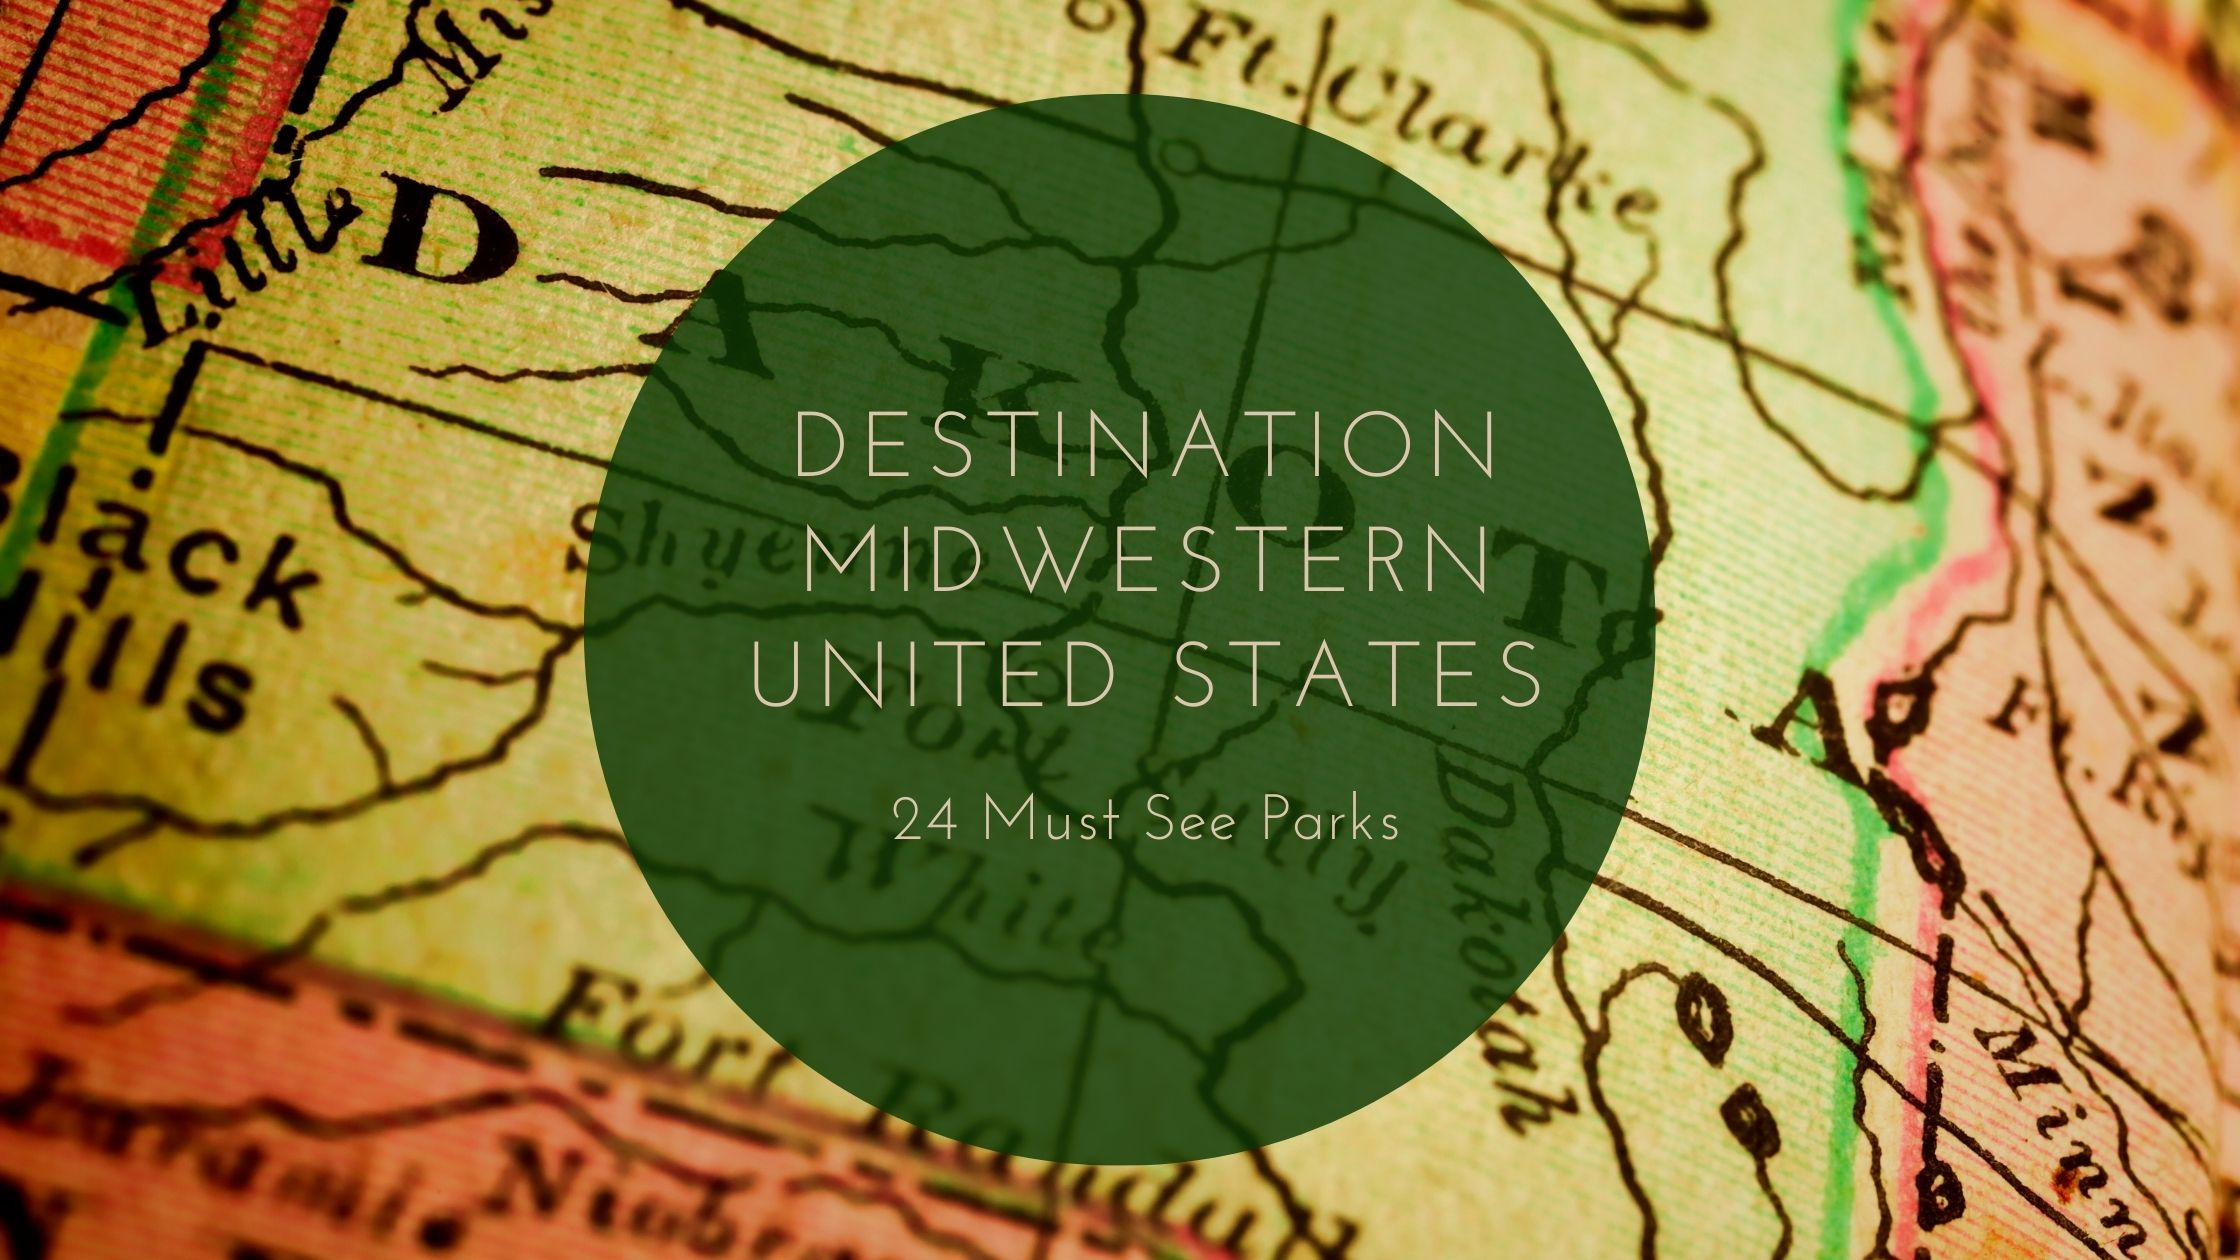 24 Must See Parks in the Midwestern United States